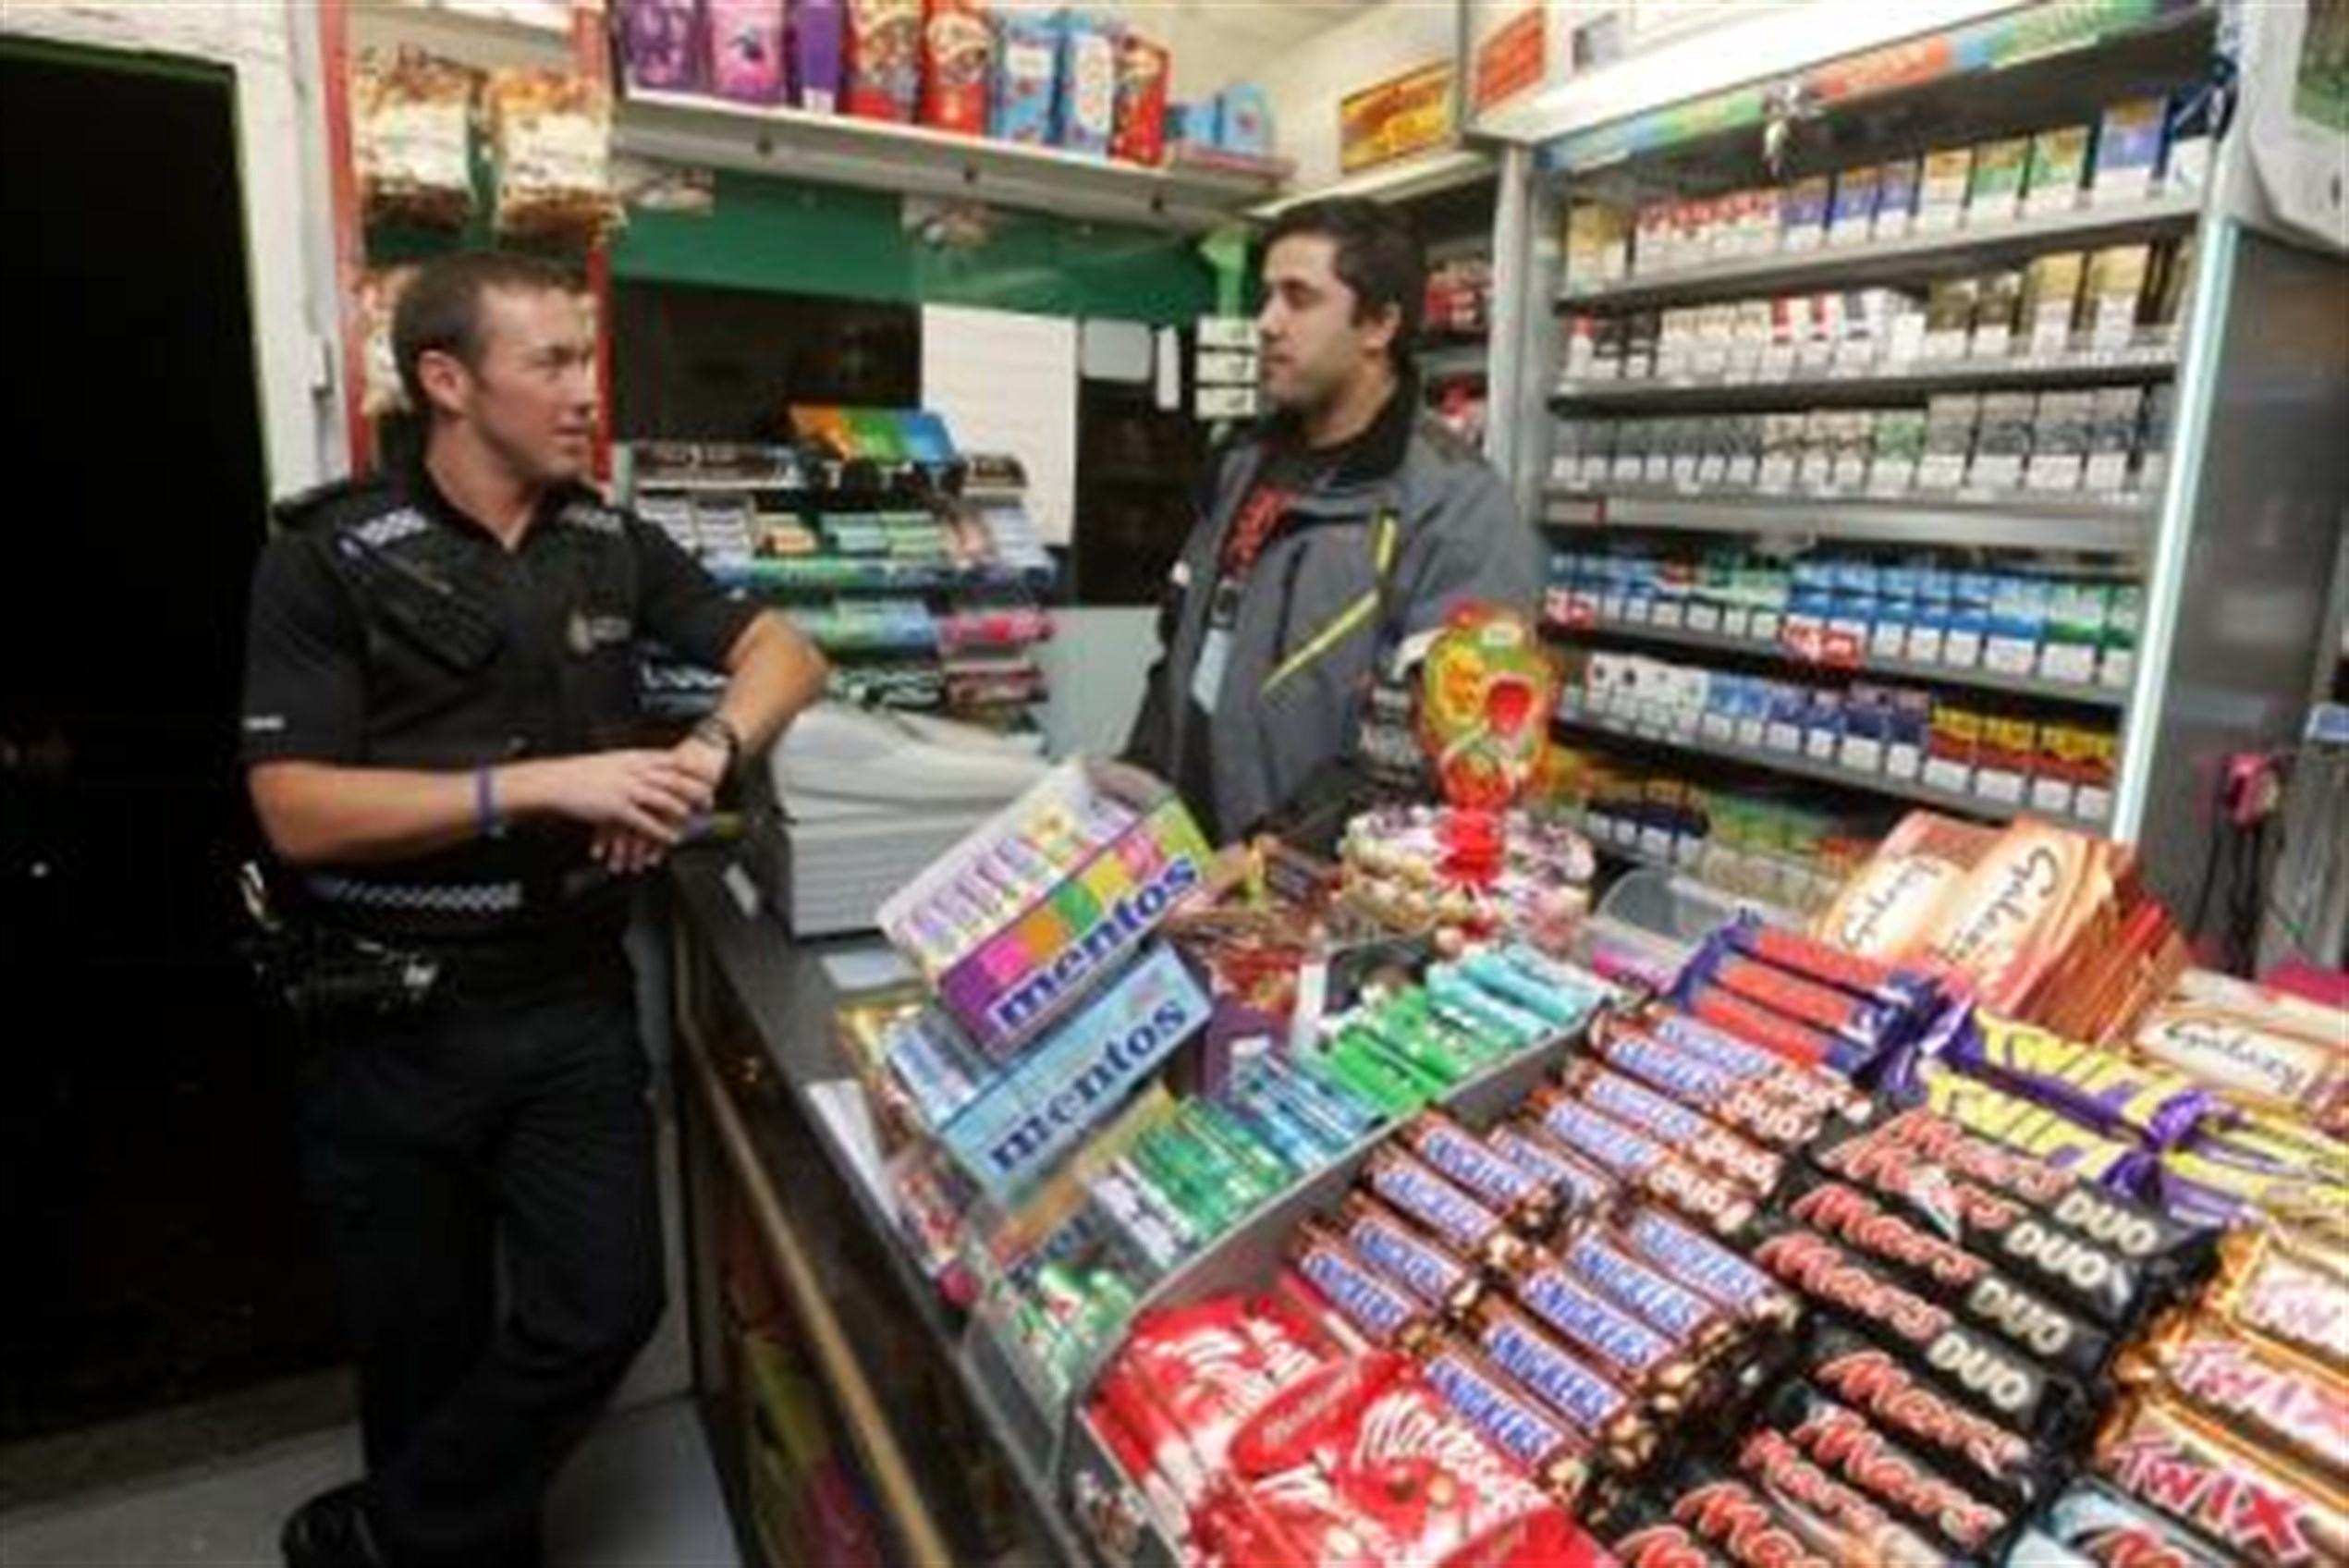 PC Graham Yare giving message to retailer about firework laws